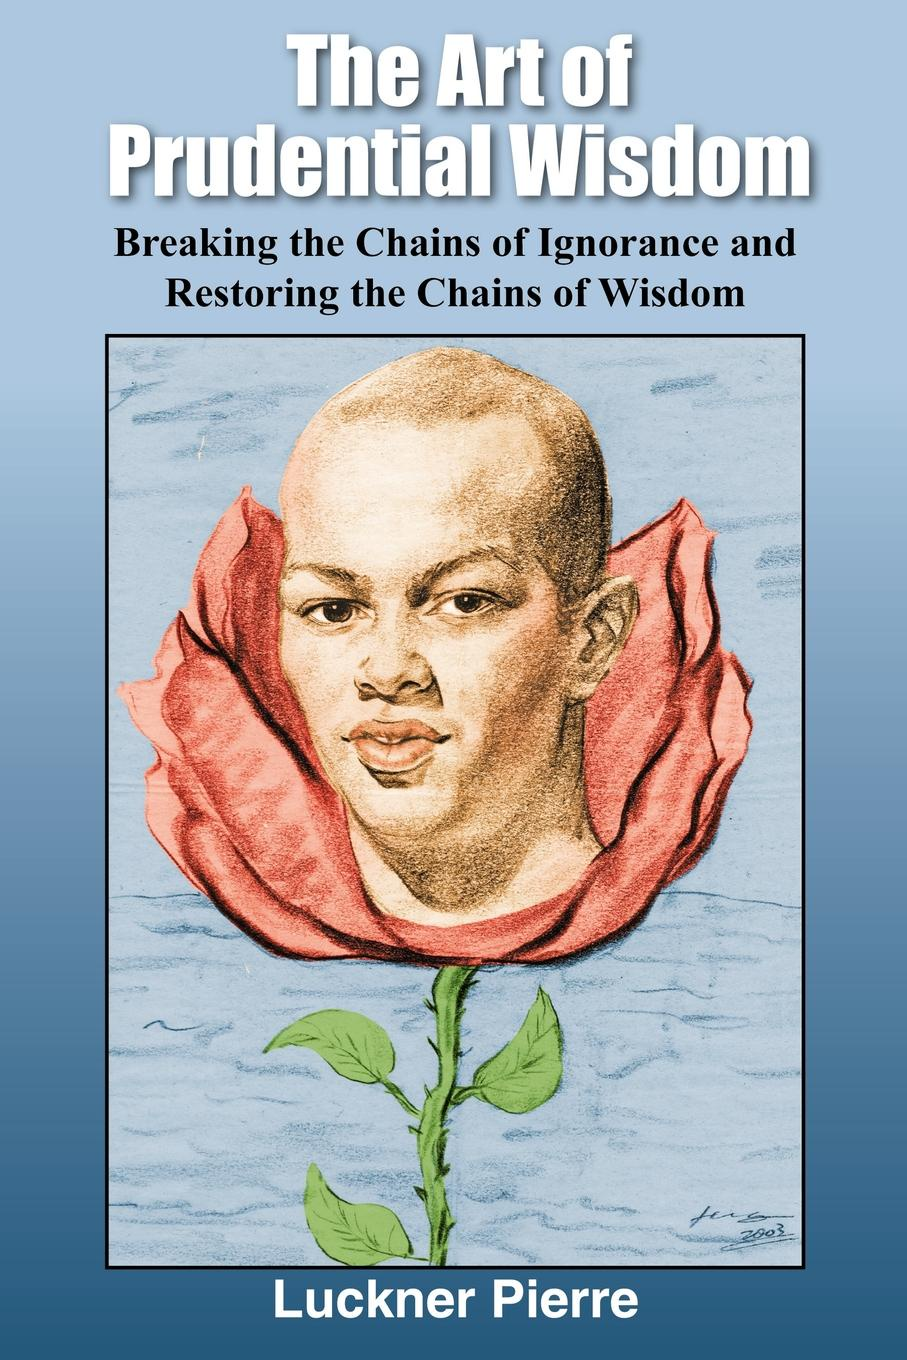 Luckner Pierre The Art of Prudential Wisdom. Breaking the Chains of Ignorance and Restoring the Chains of Wisdom the wisdom of unicorns